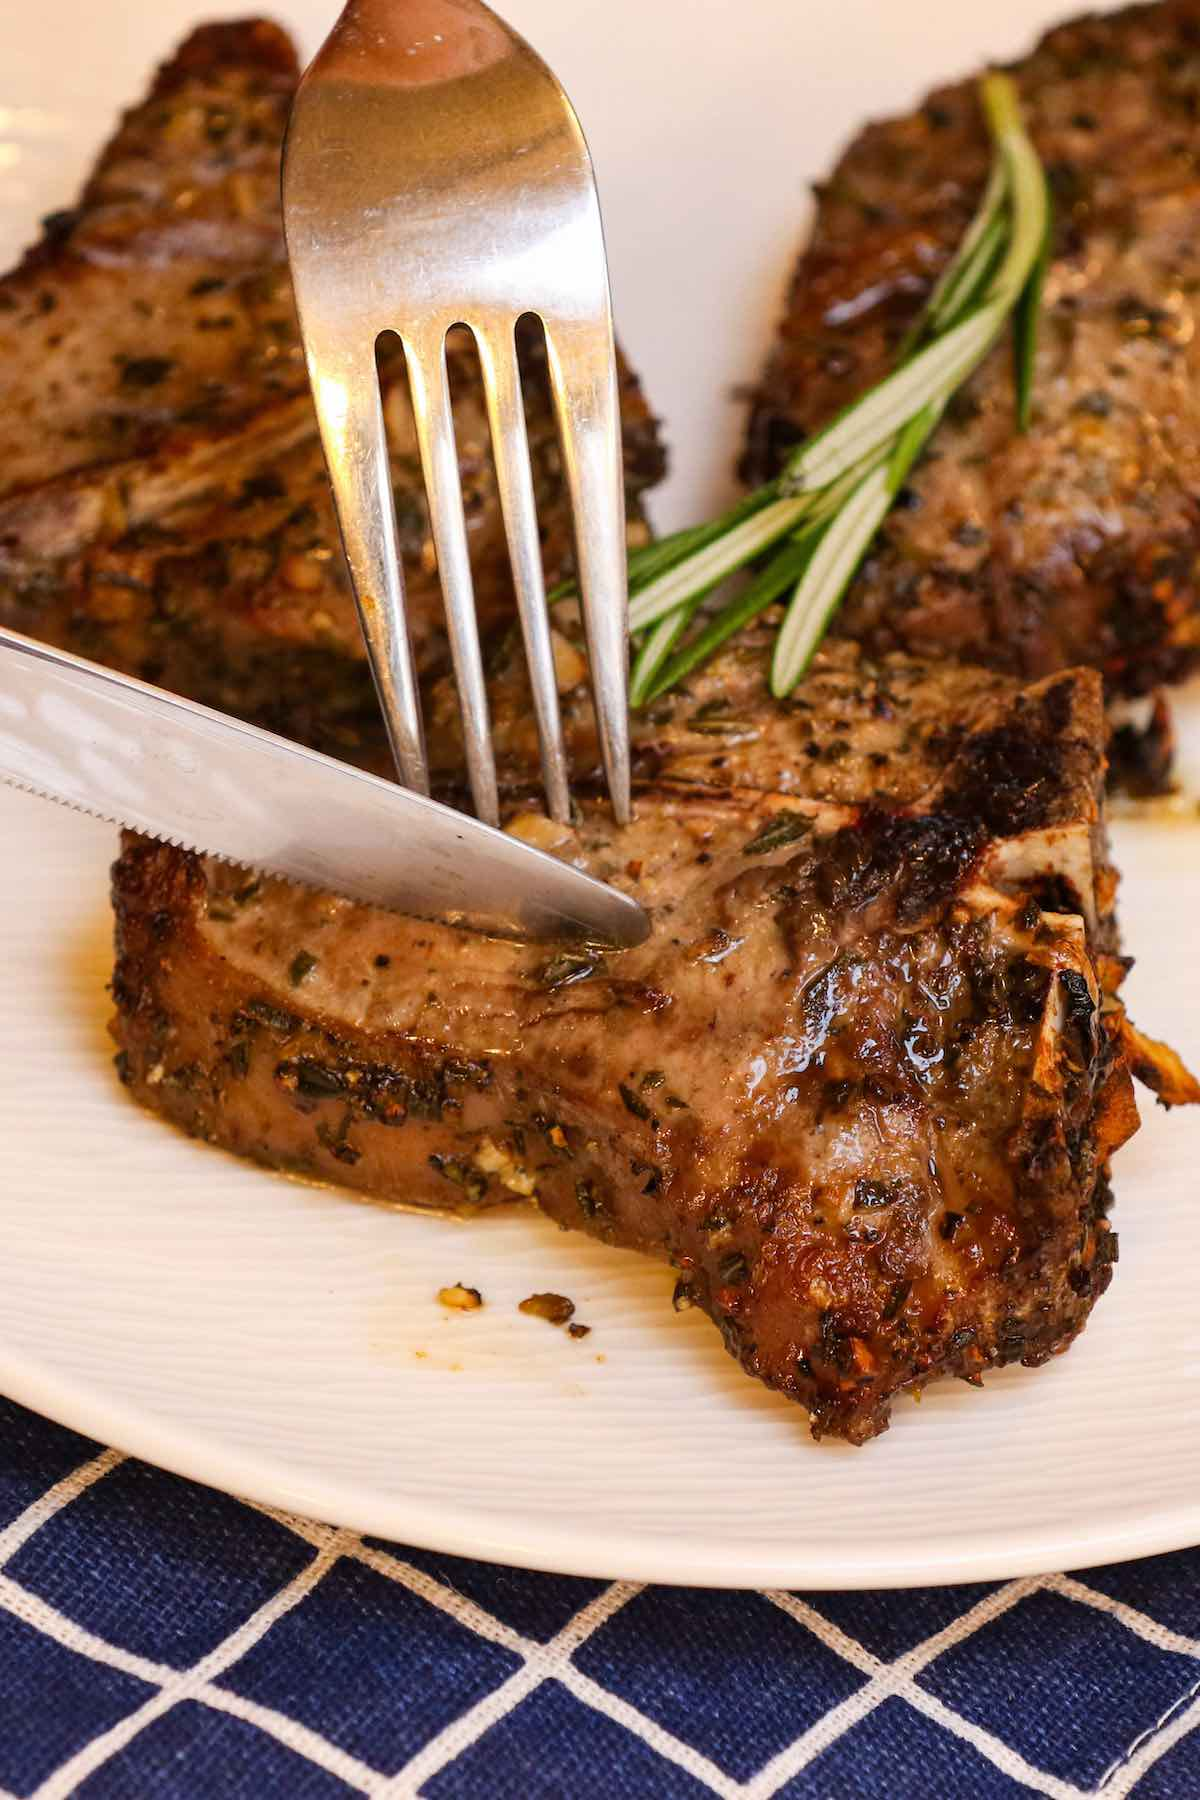 Cutting into a lamb loin chop with a fork and knife